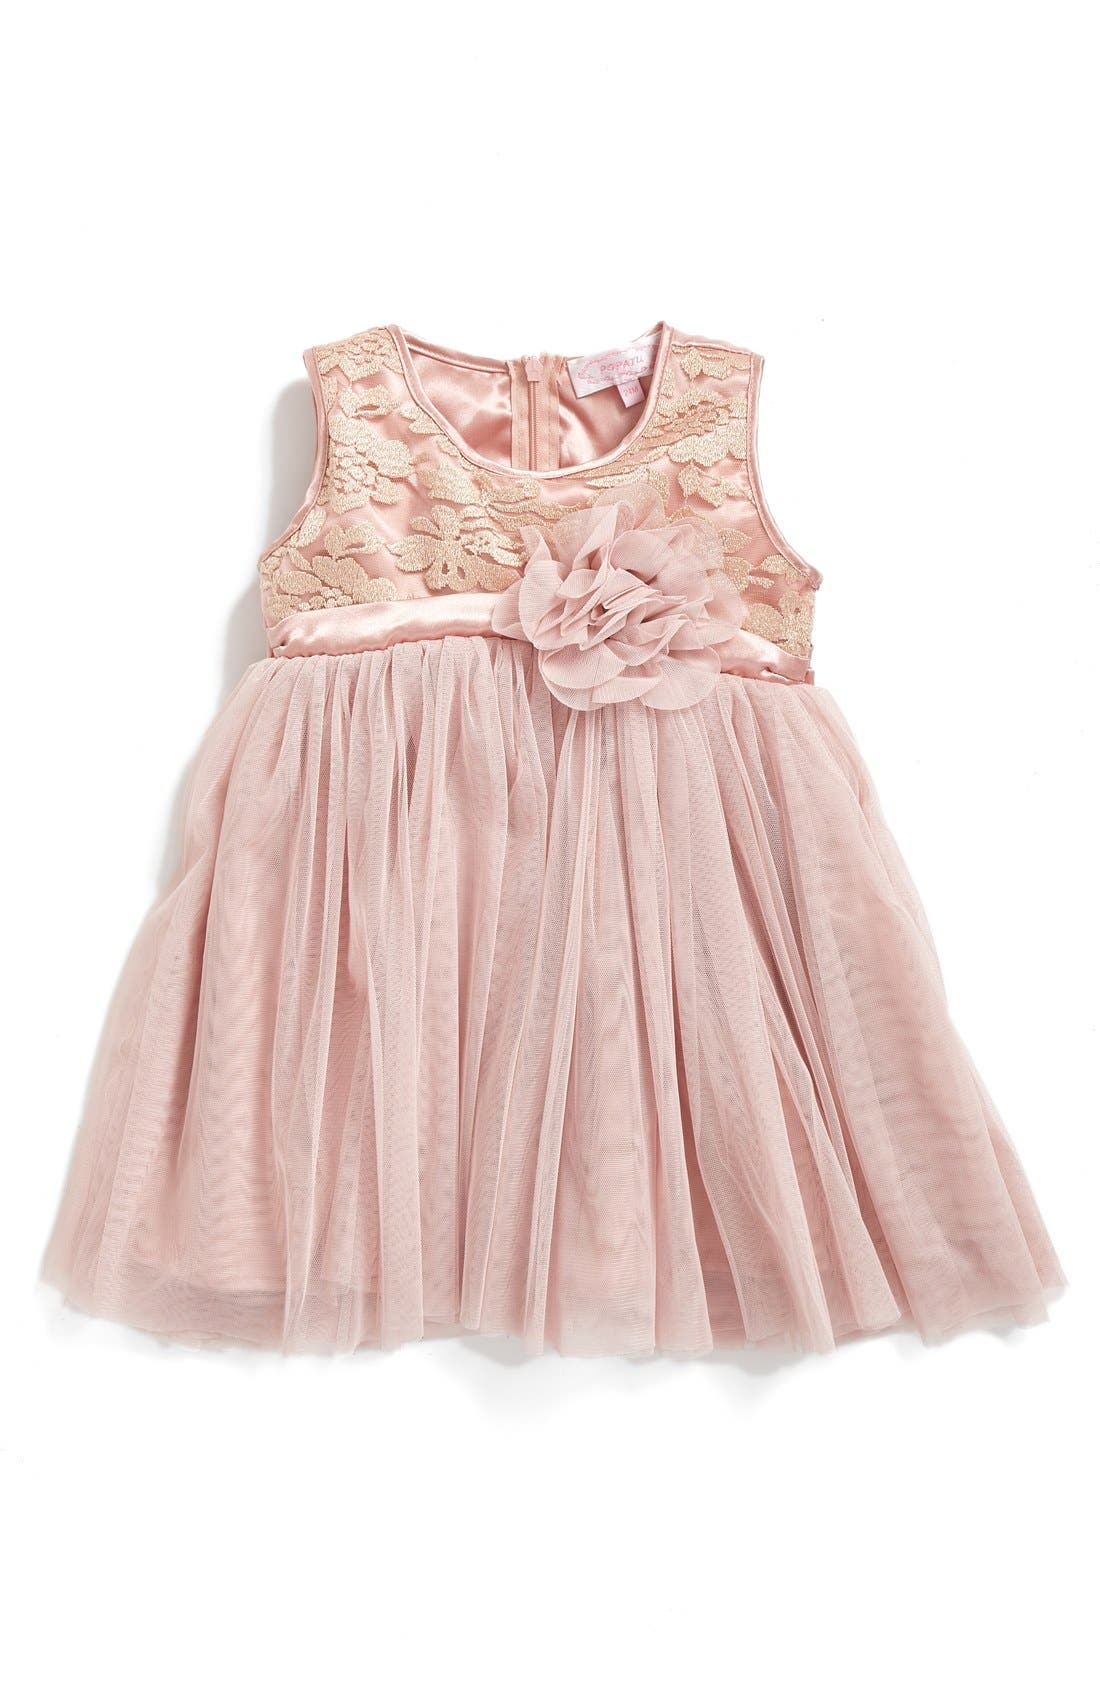 Empire Waist Tulle Dress,                         Main,                         color, Dusty Pink